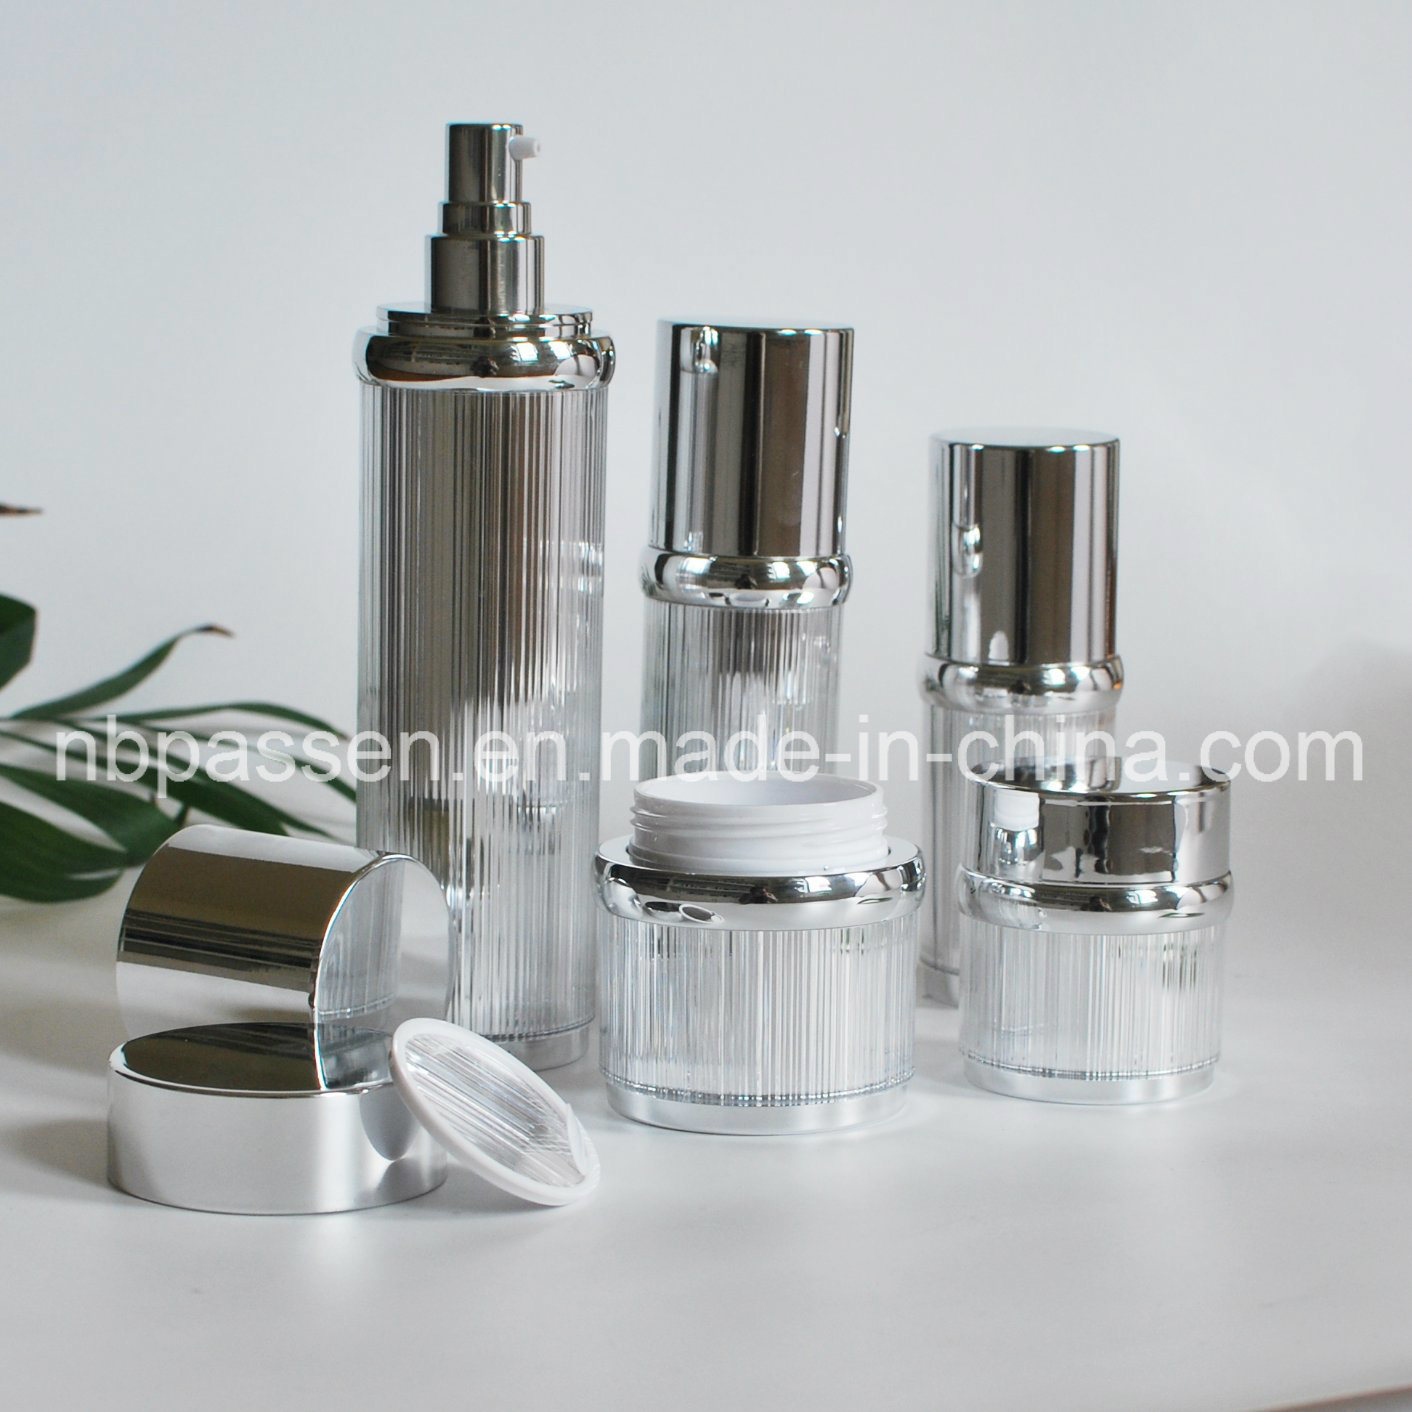 Glossy Silver Acrylic Cream Jar Lotion Bottle for Cosmetics (PPC-NEW-100)